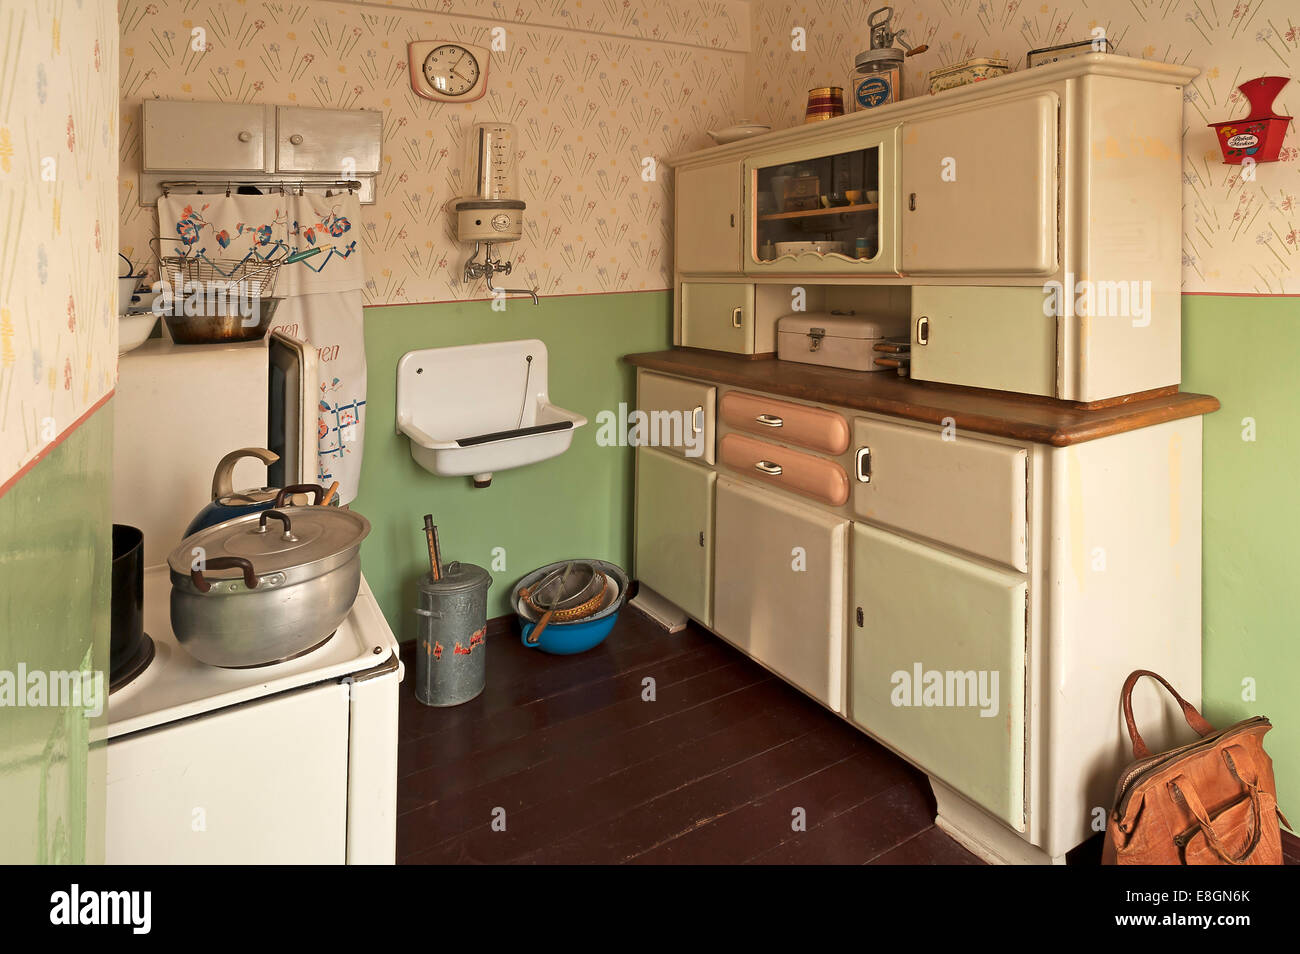 Kitchen 1950s Stockfotos & Kitchen 1950s Bilder - Alamy